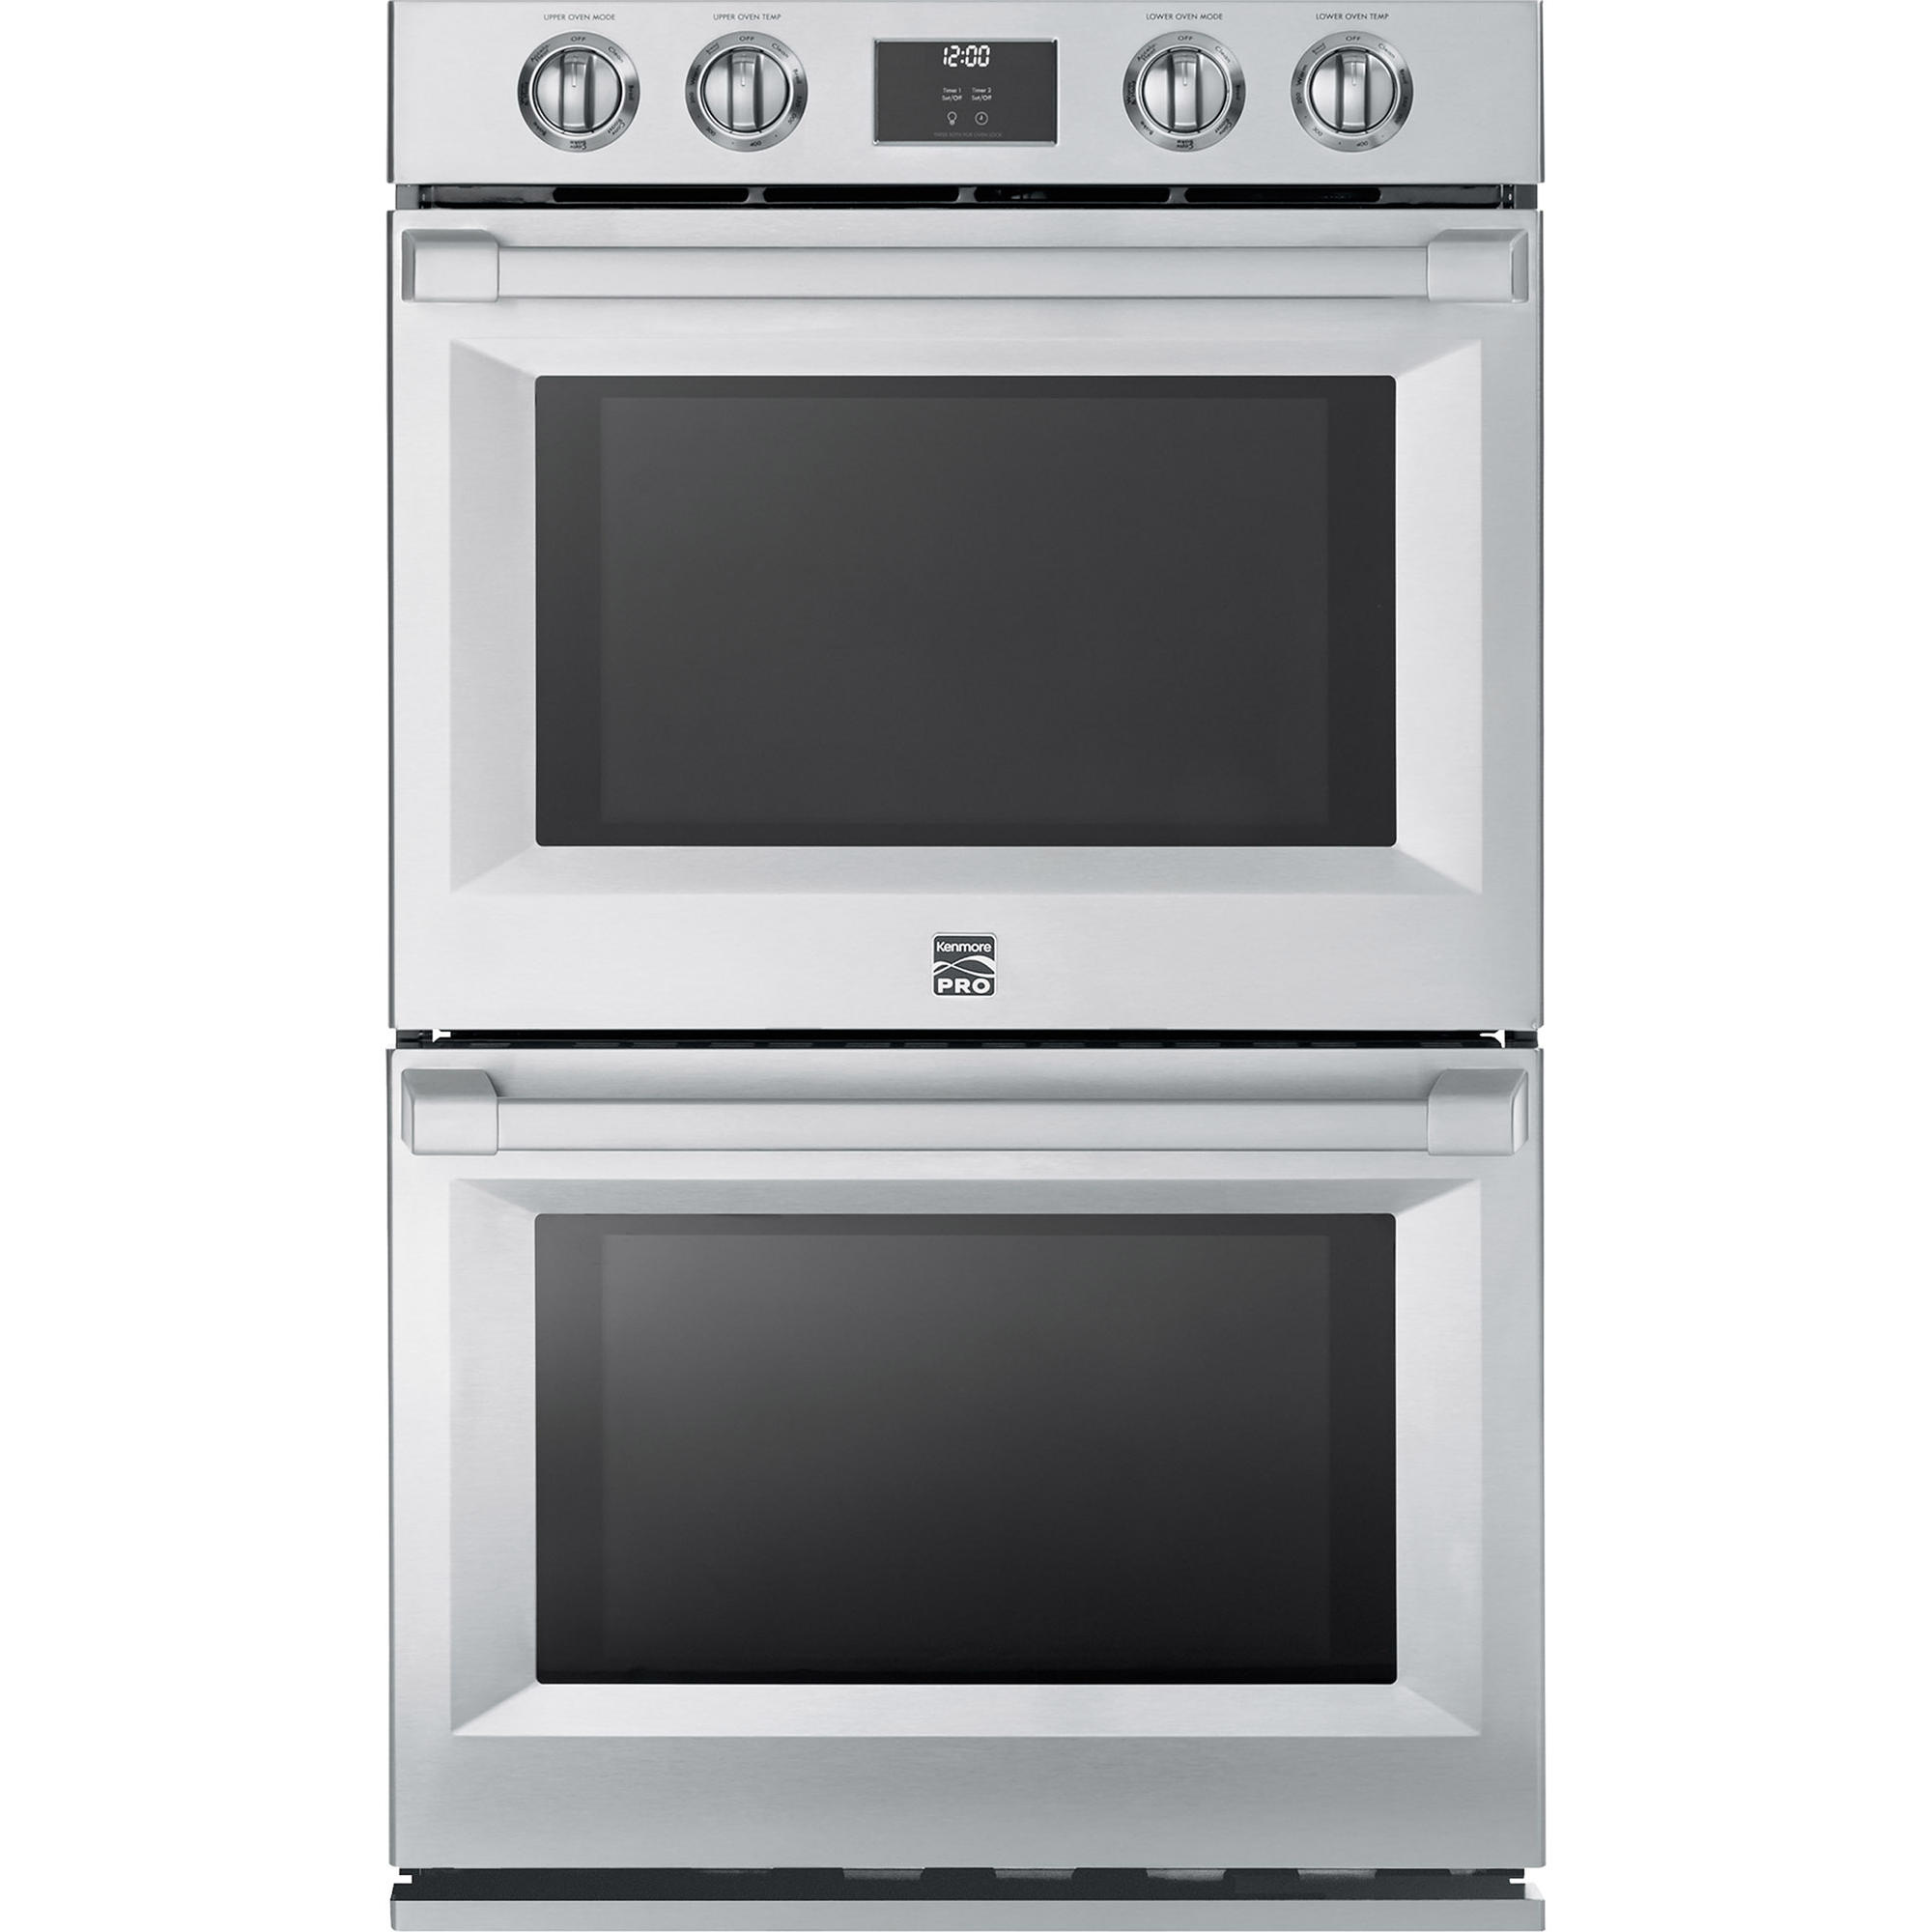 30 Wall Ovens Check Out Kenmore Pro 41143 30 Electric Double Wall Oven Stainless Steel Shopyourway